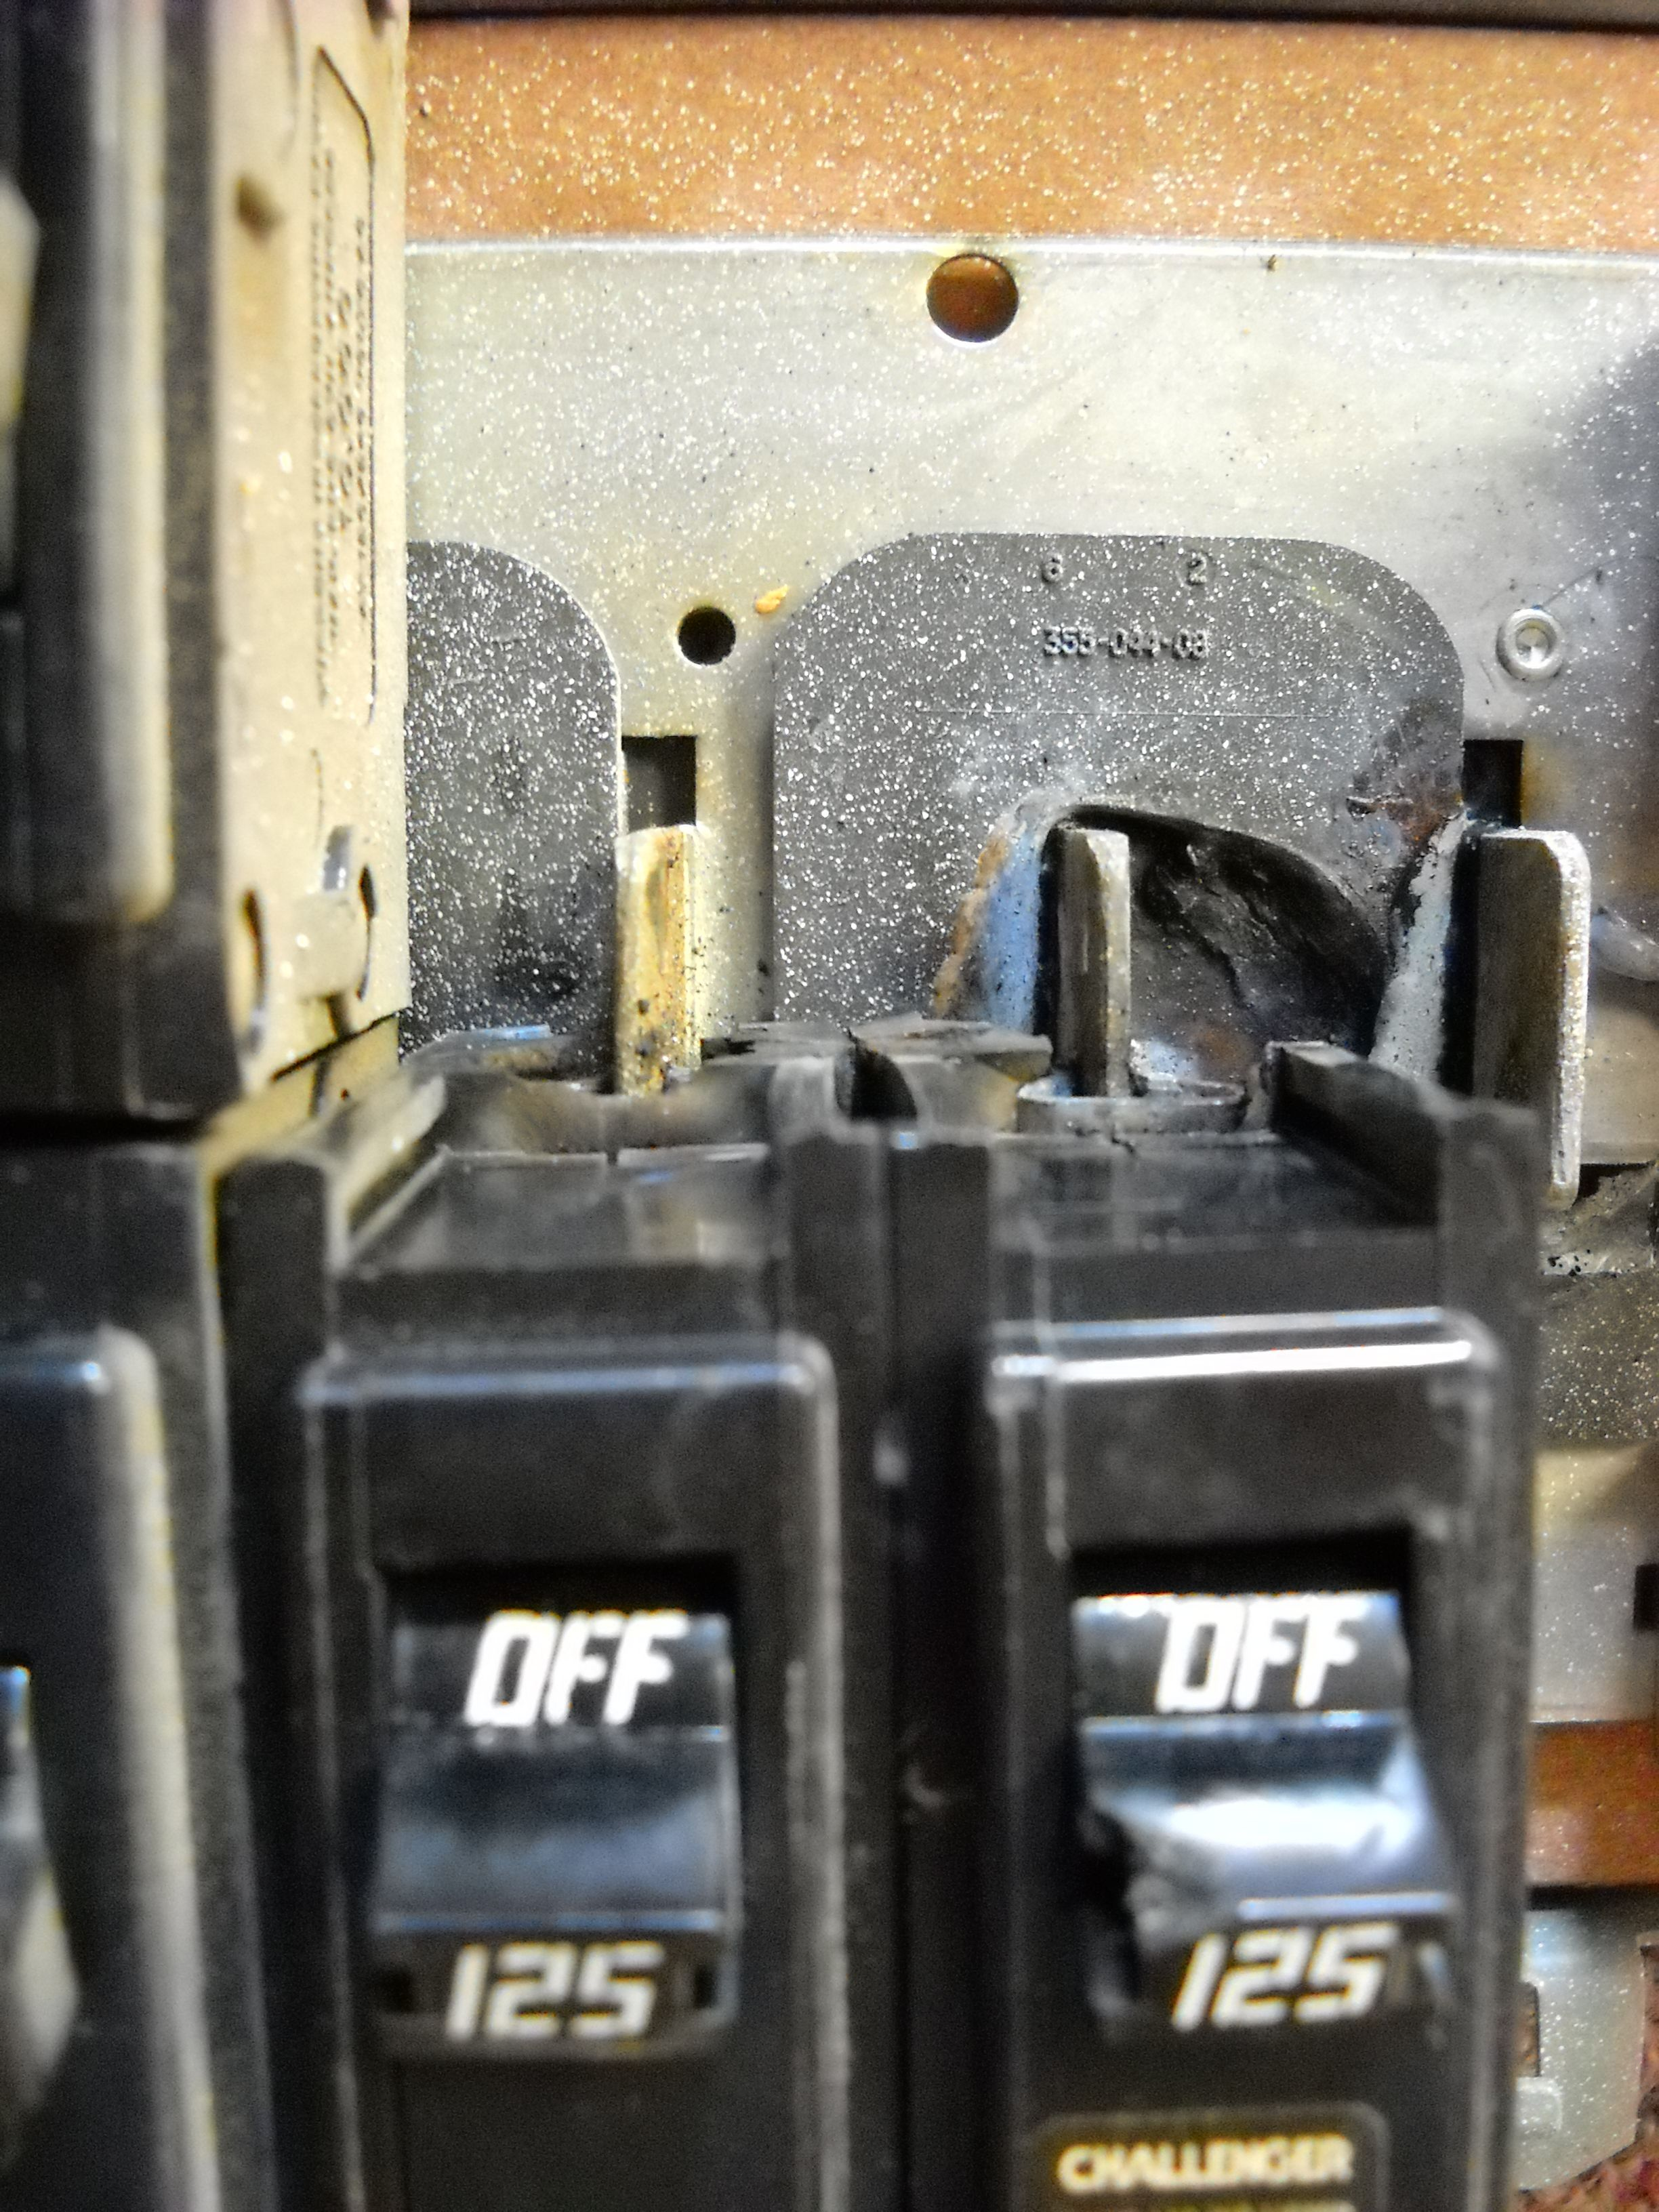 This Is A Breaker That Was Burnt In The Back Electrician